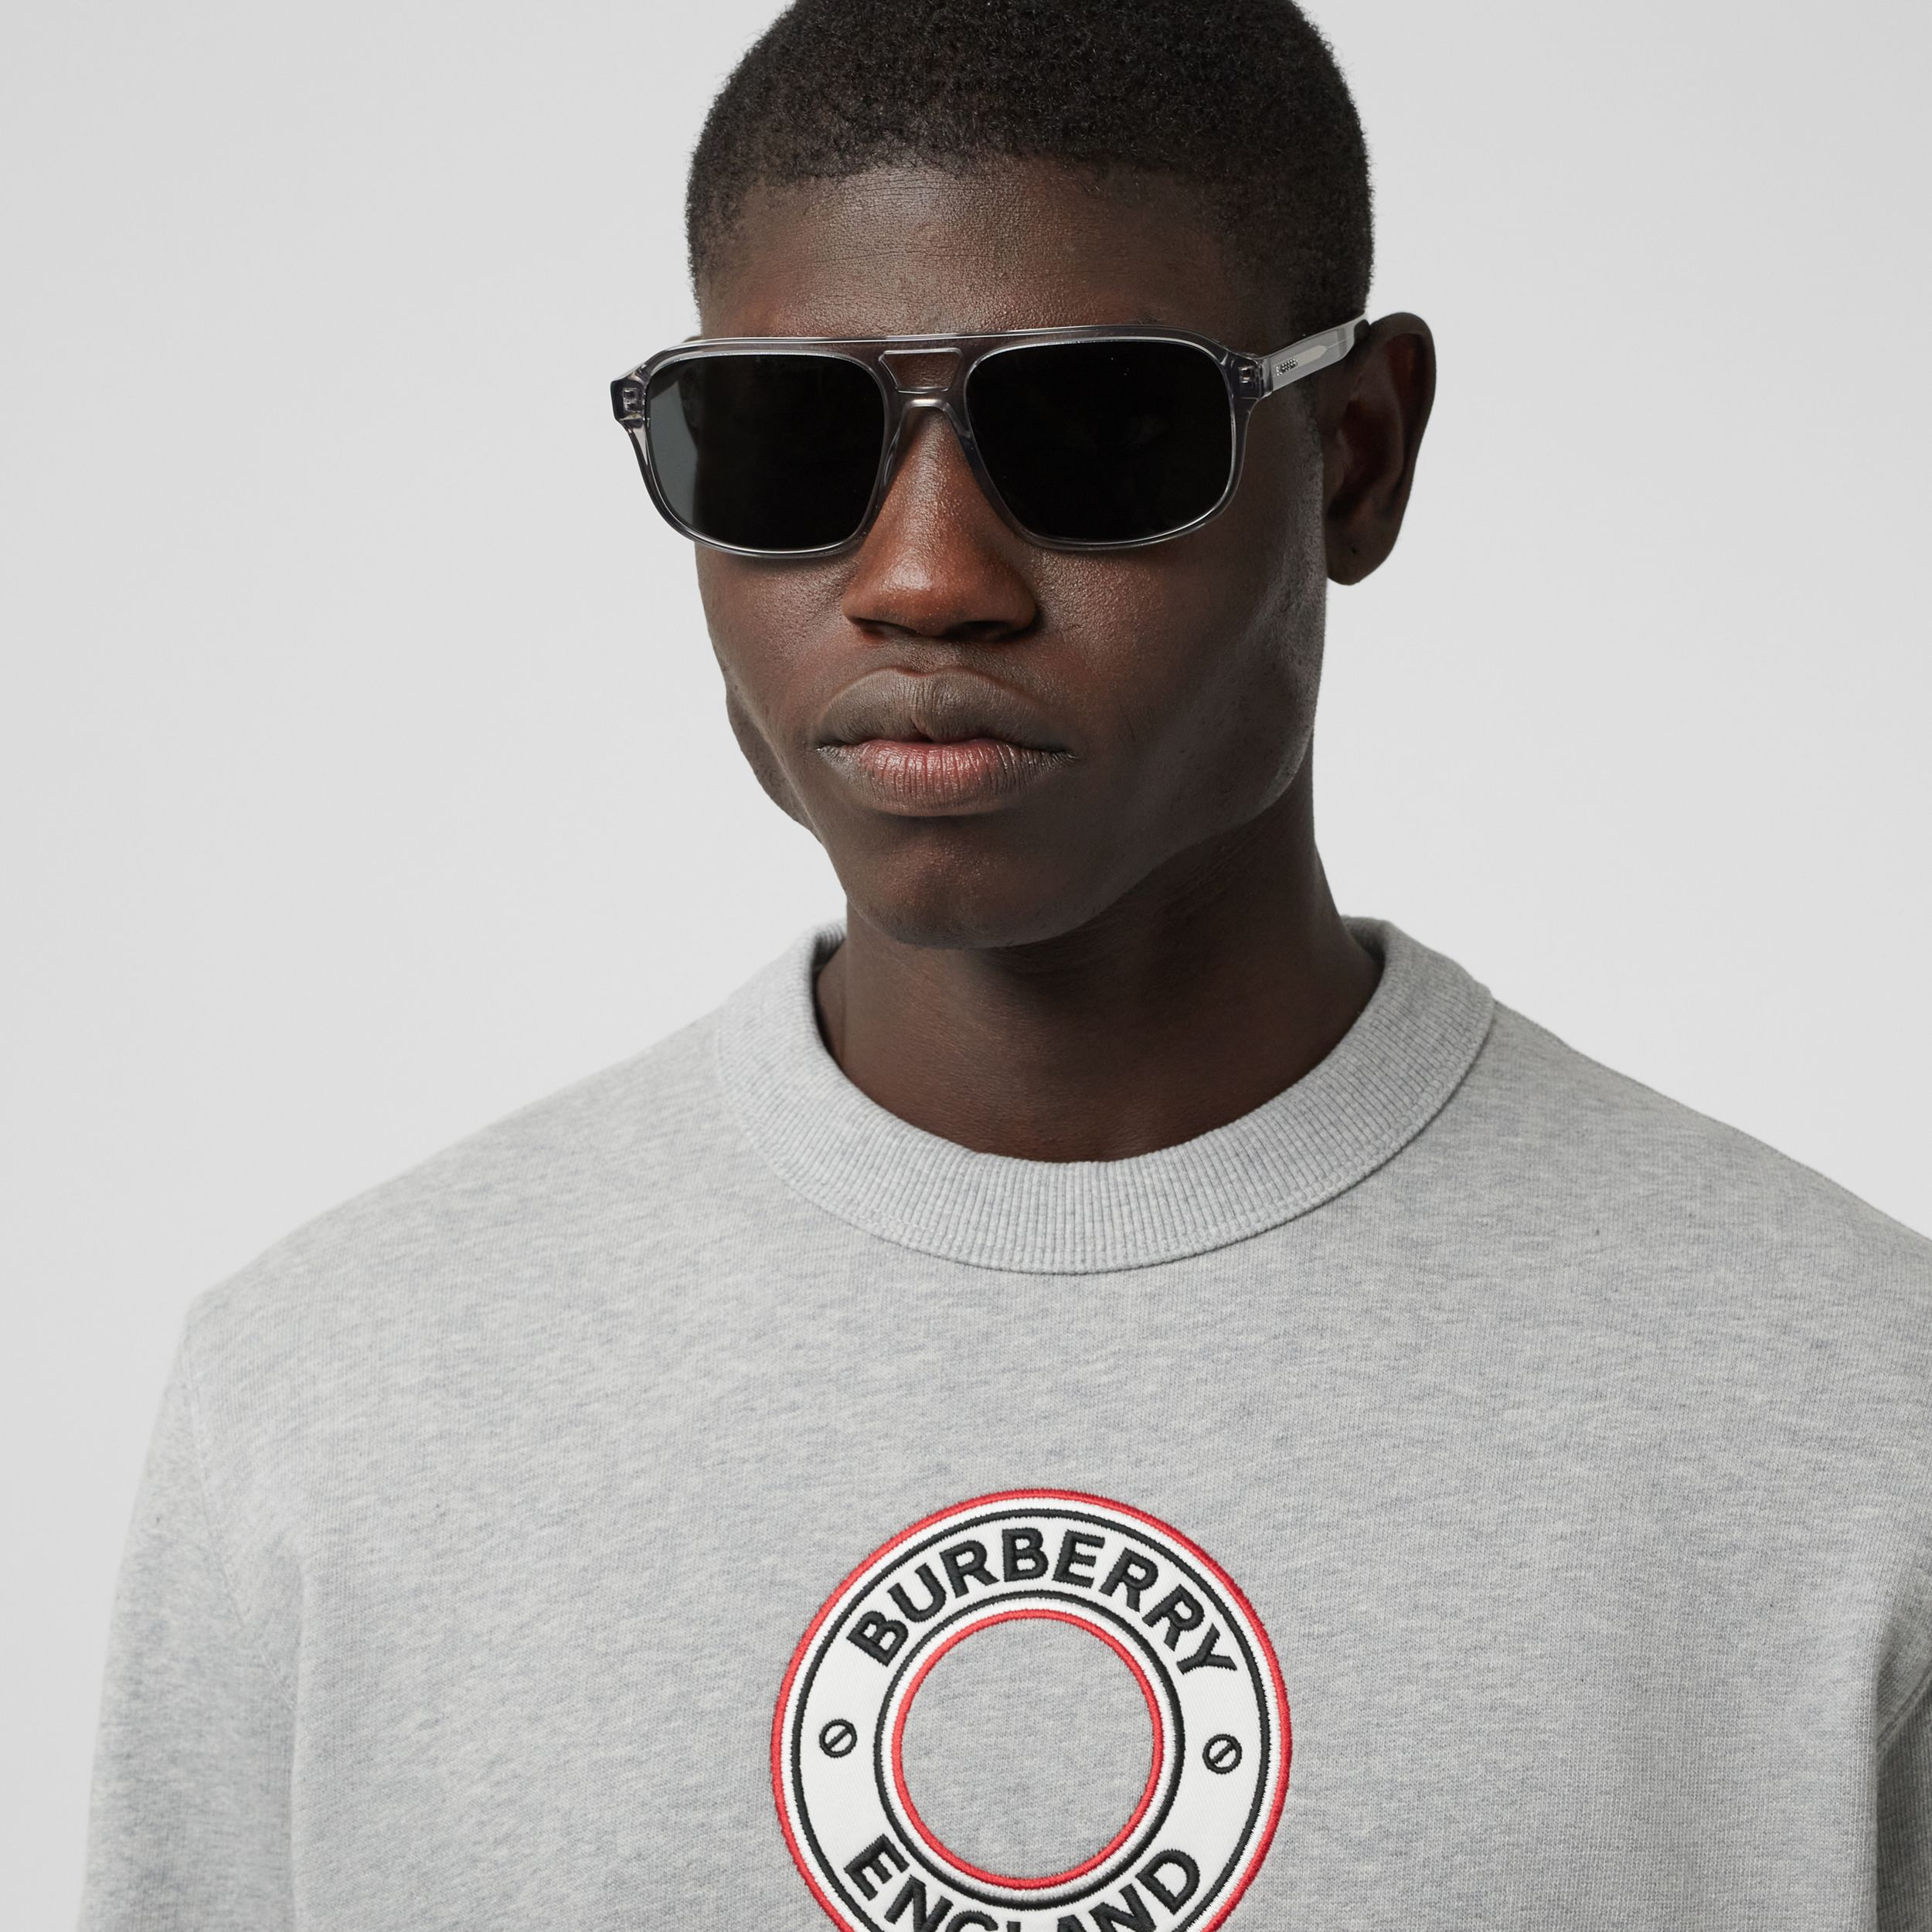 Logo Graphic Appliqué Cotton Sweatshirt in Pale Grey Melange - Men | Burberry - 2